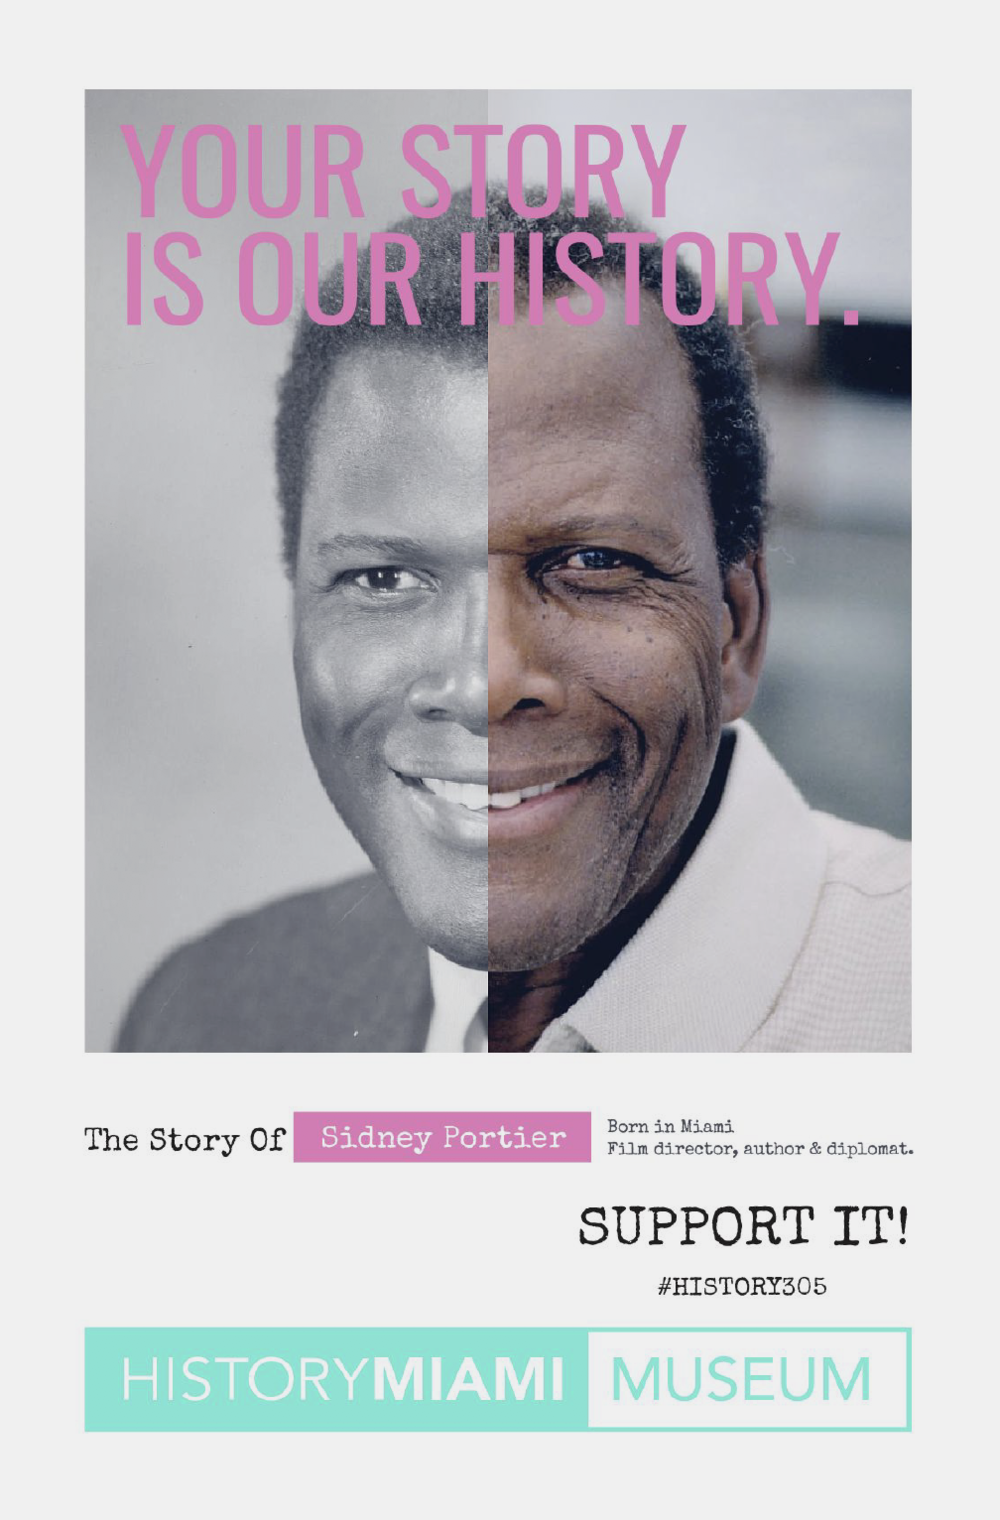 Miamians, our history is made out of your stories. Support it. - This campaign promotes Miami's history by acknowledging the many contributions of our locals to the national and universal culture. Featuring famous (and not-so-famous) pop culture icons, we make a strong call to the community, including its prominent celebrities, to support our history and contribute to the museum.